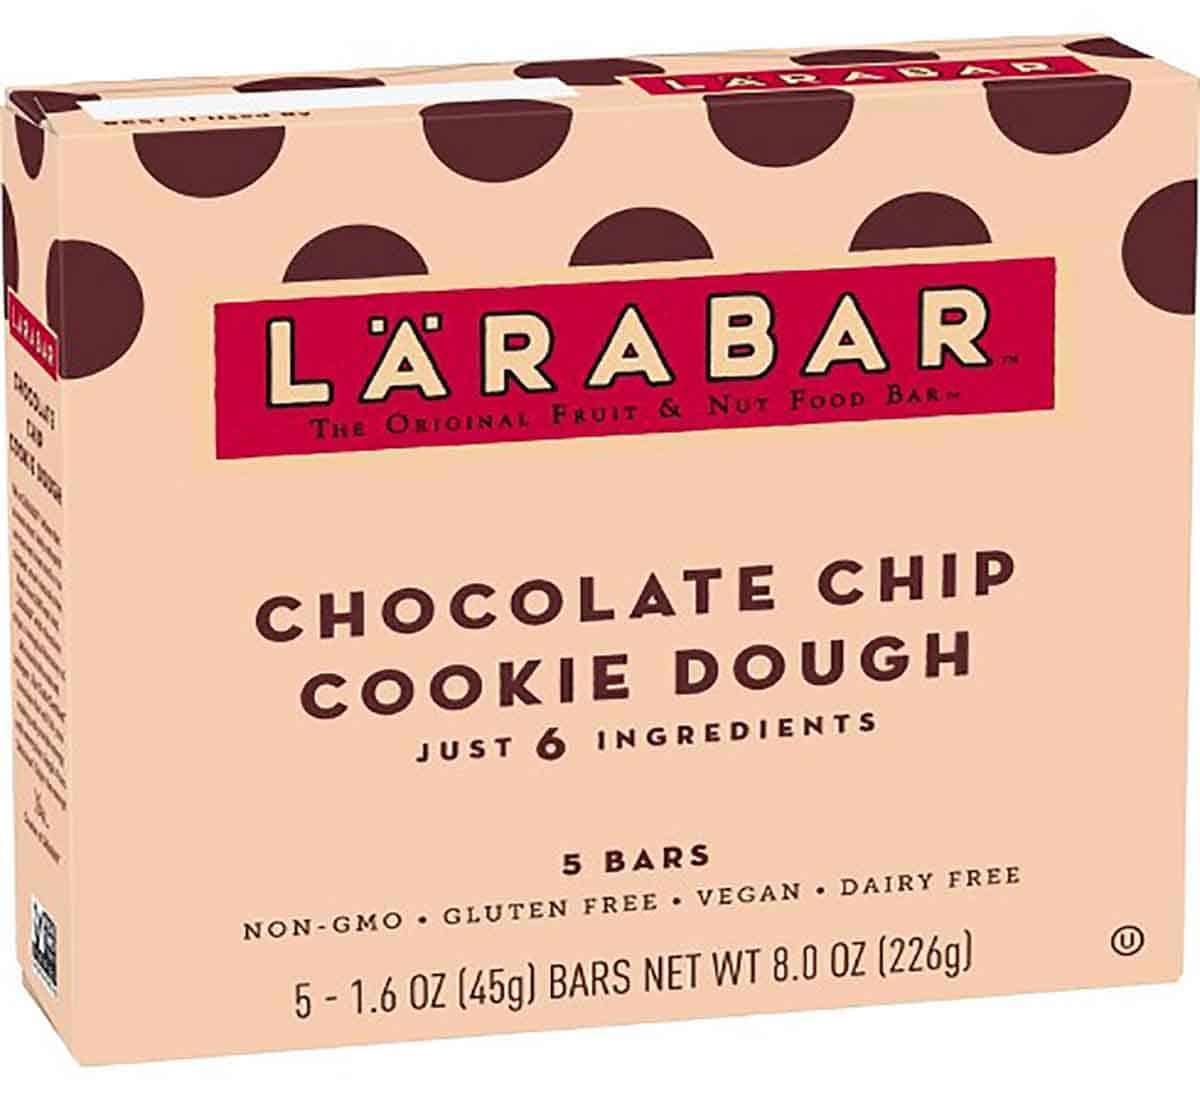 A box of lara bars as an example of a healthy packaged snack.